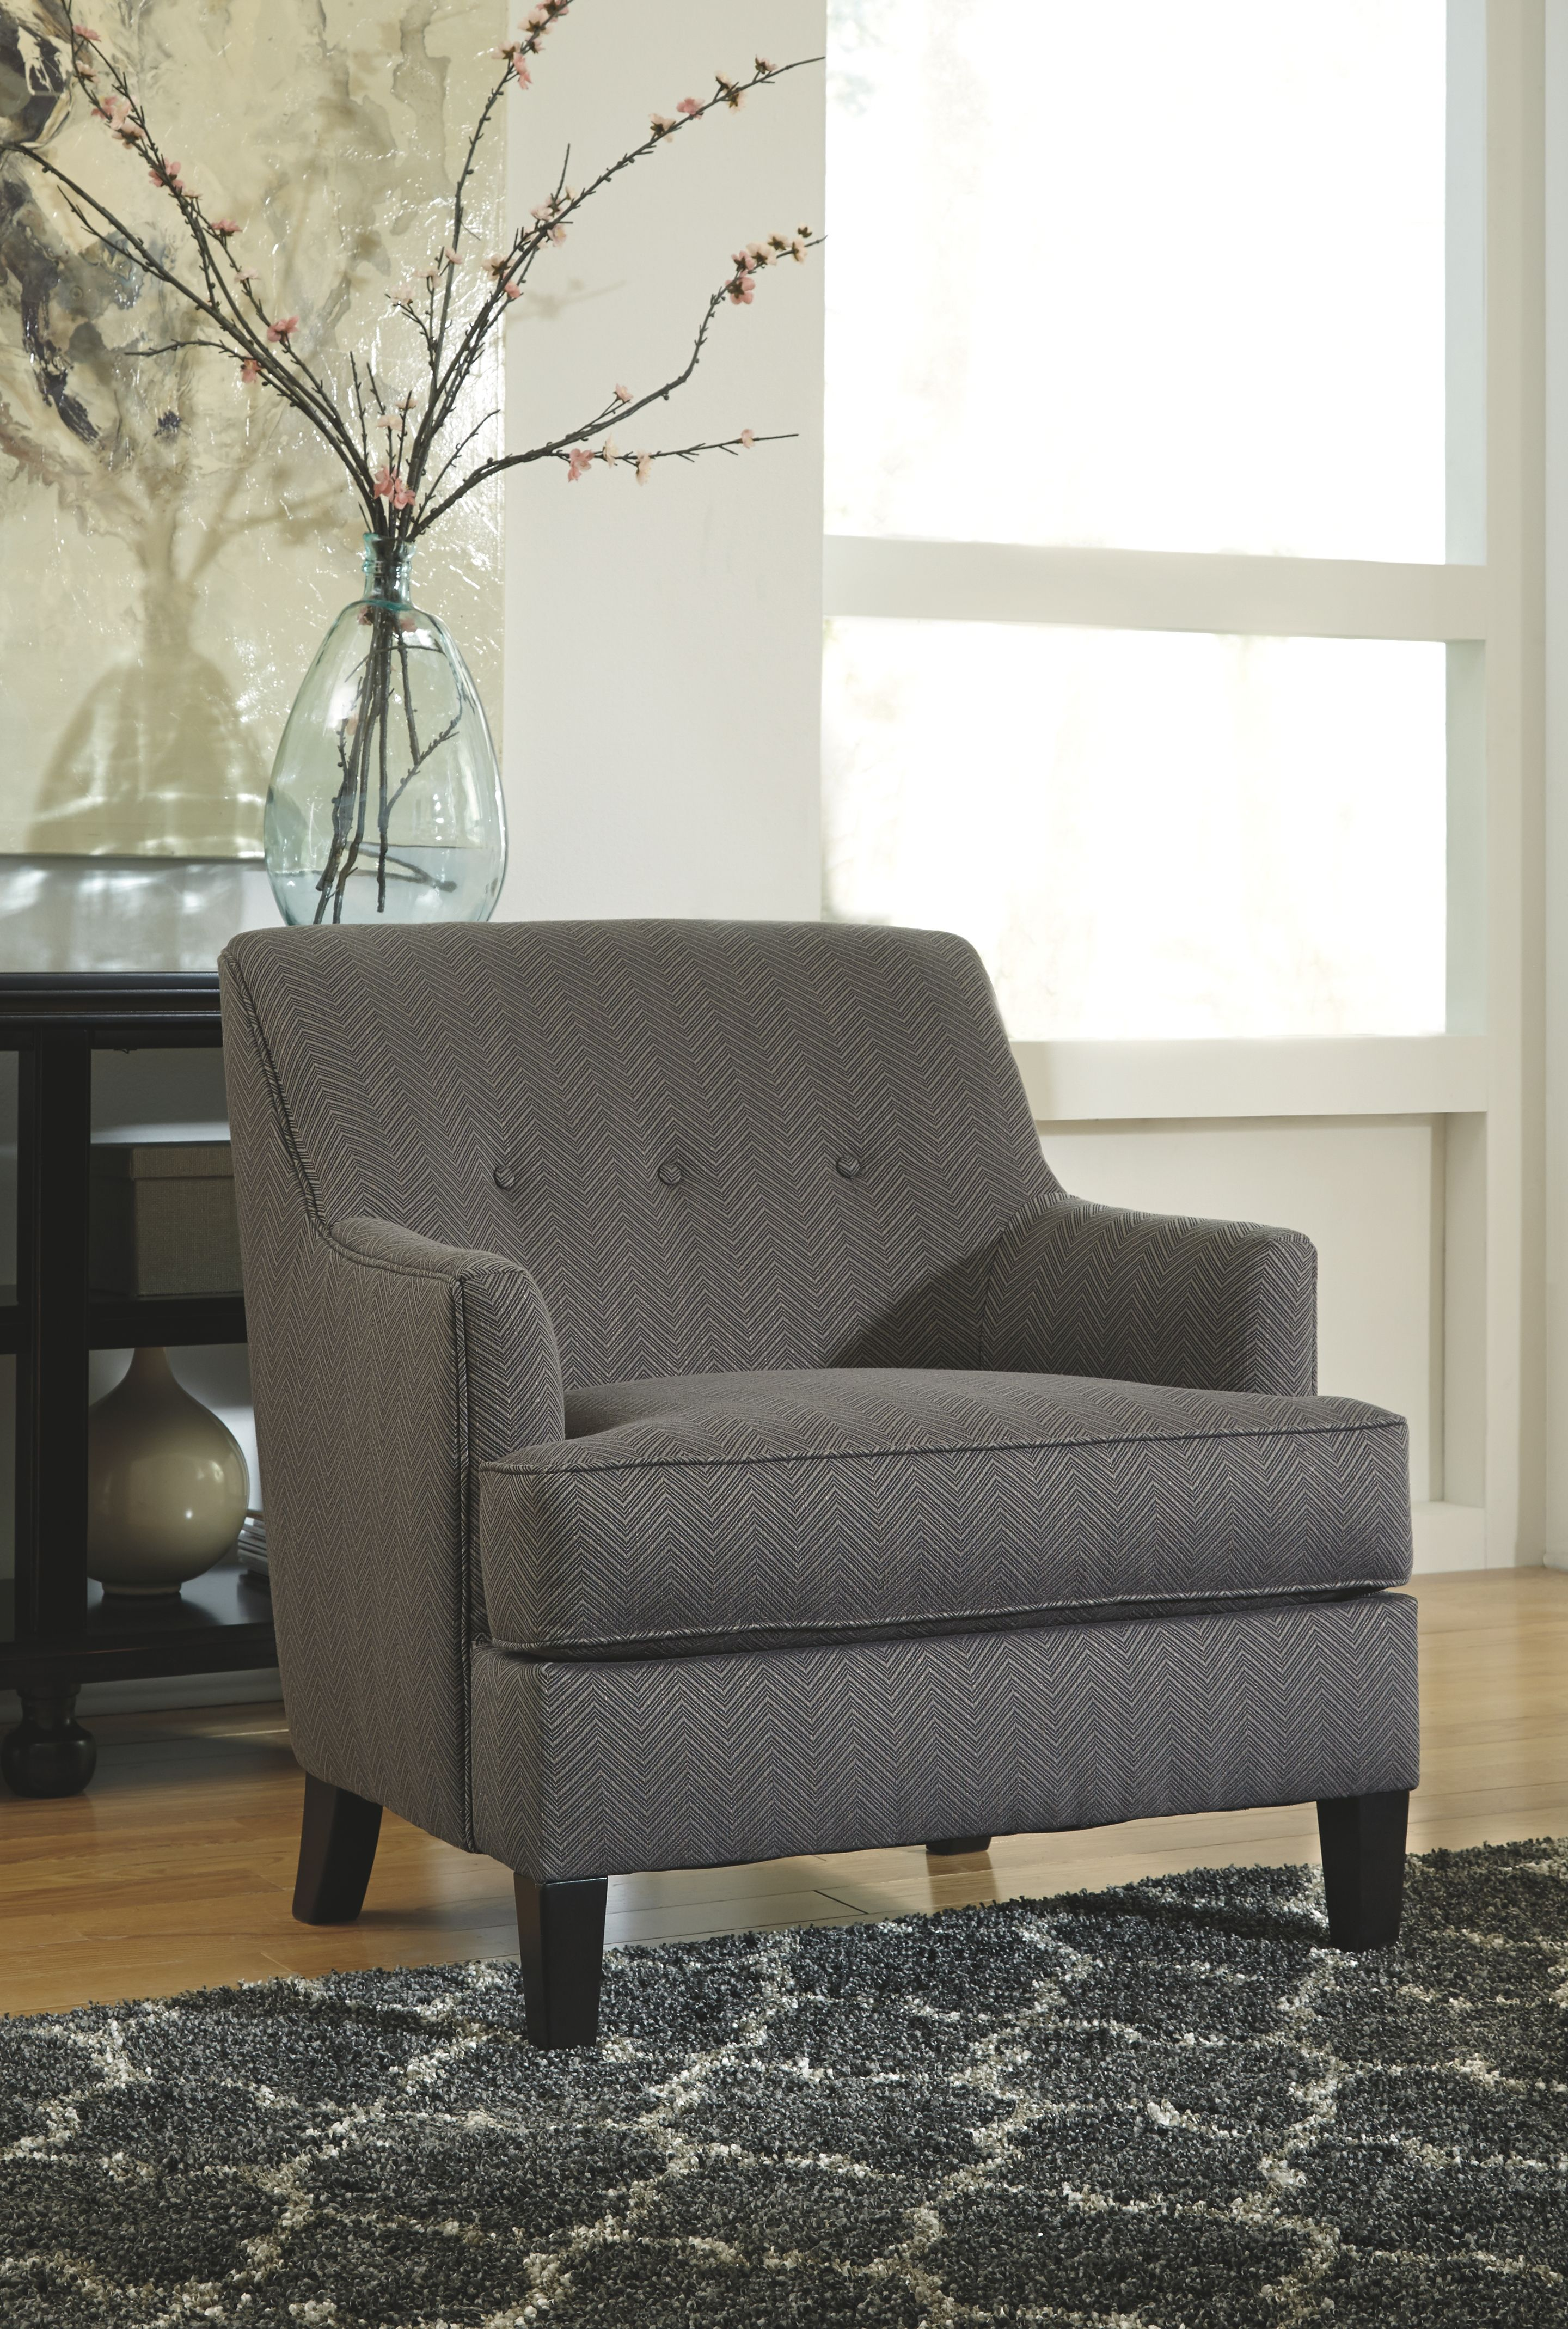 Crislyn accents chair smoke